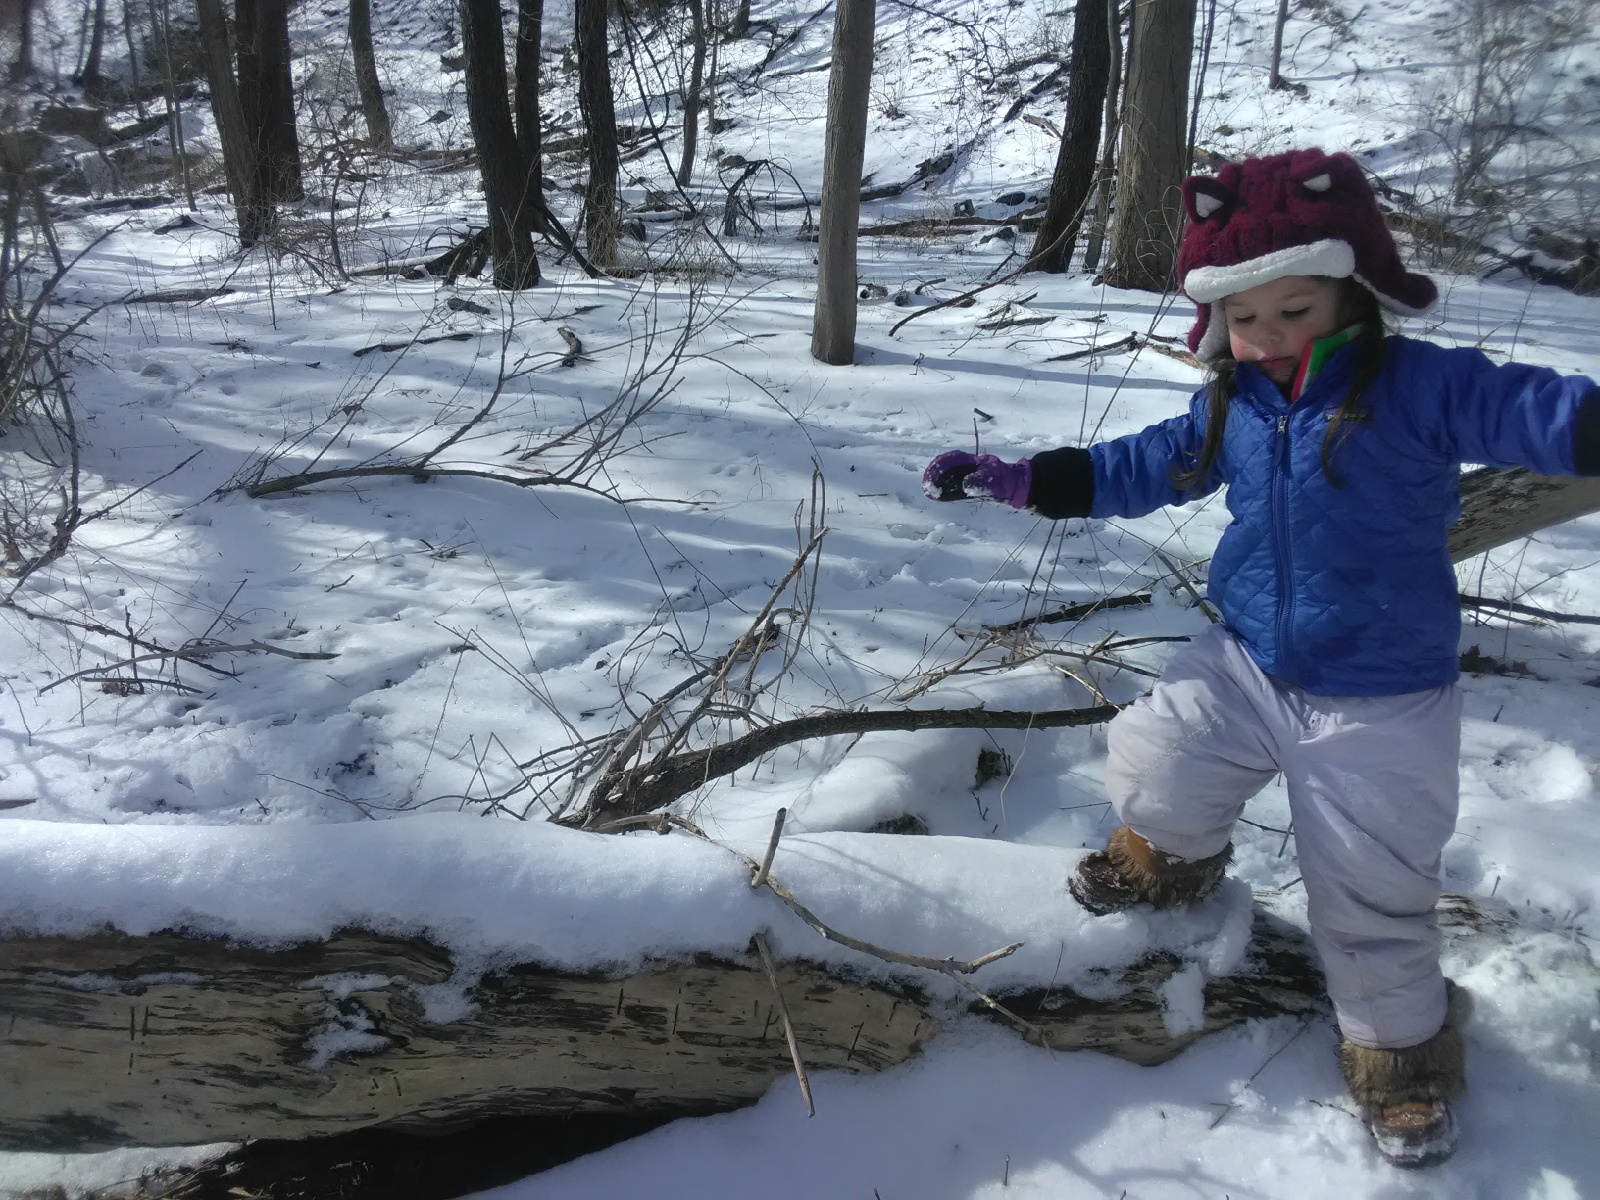 Small child stepping onto a snow covered log.